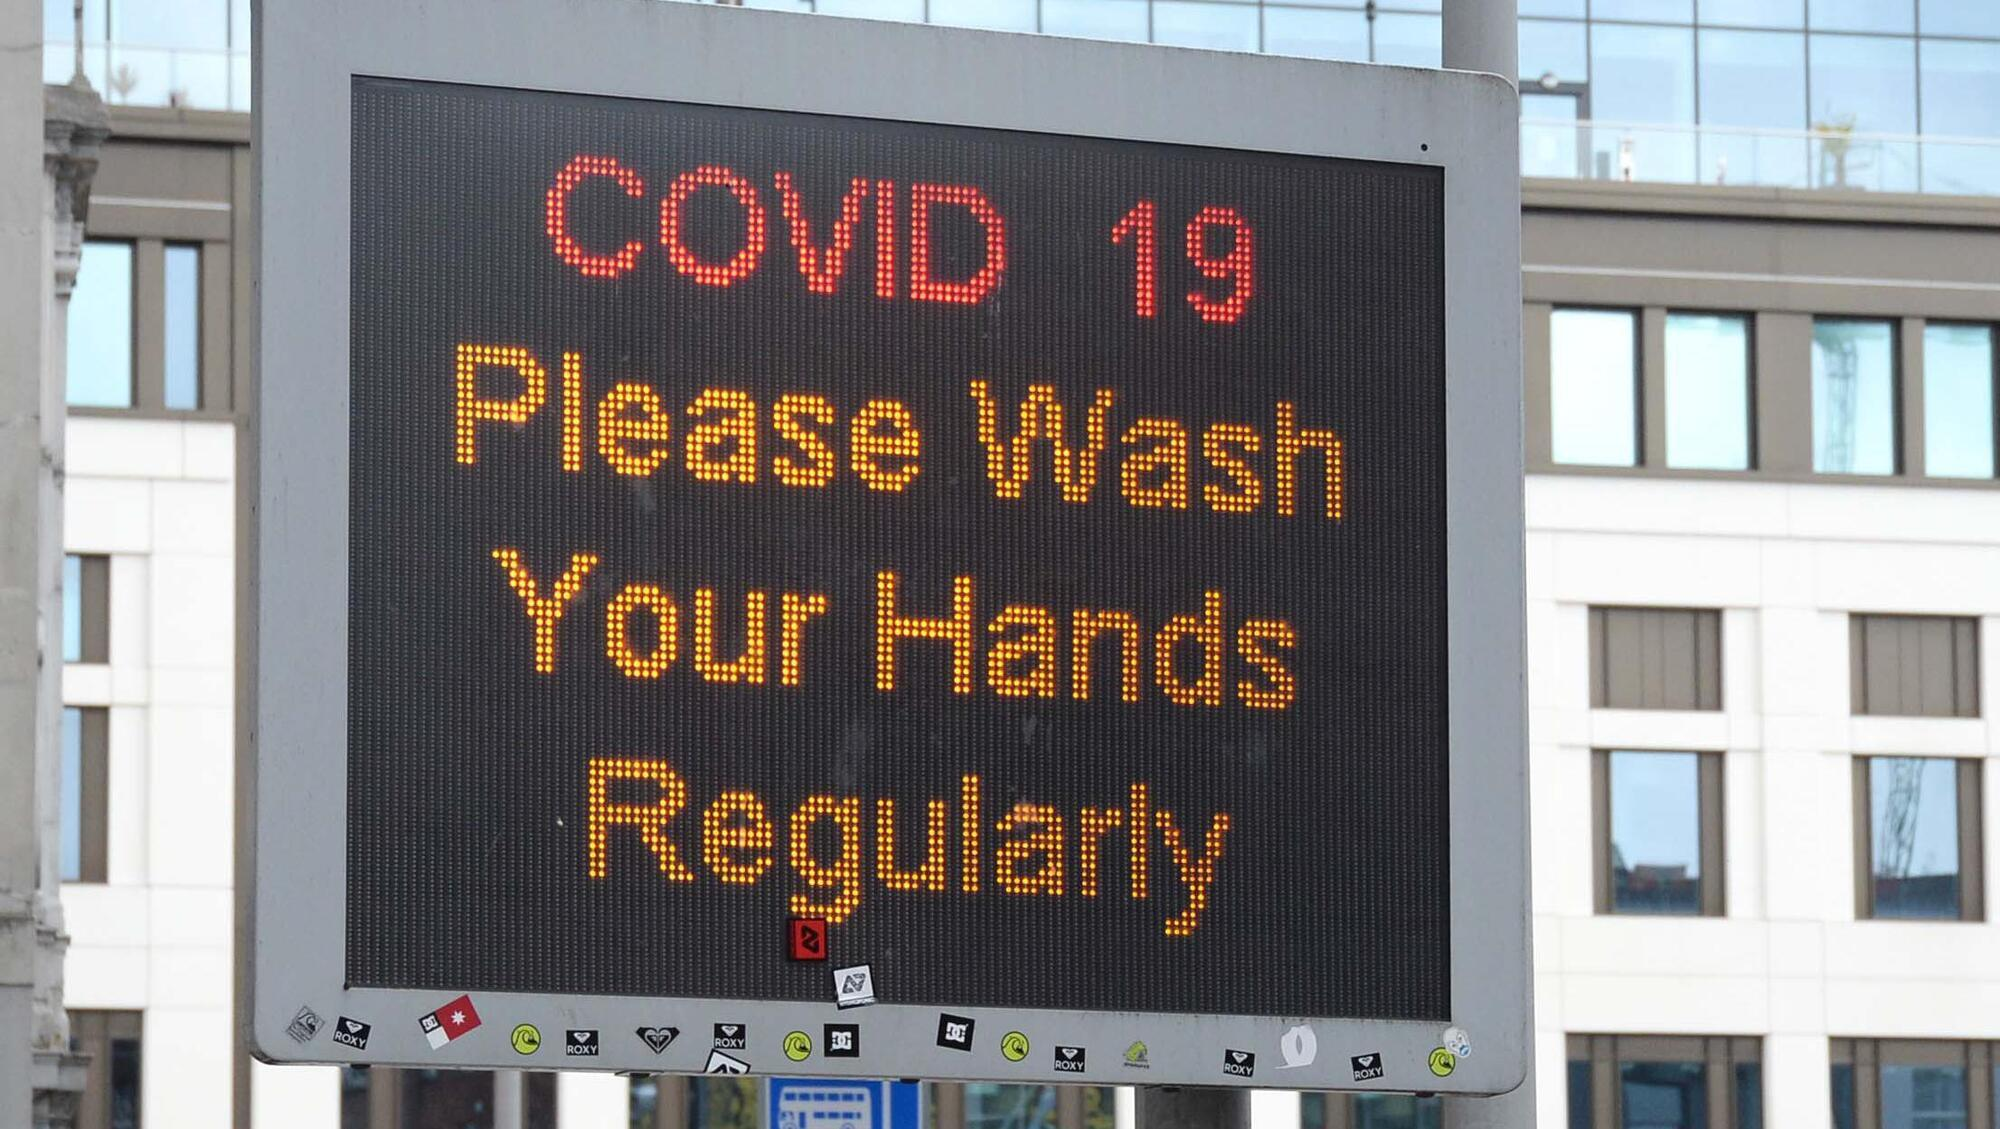 New data shows decrease in Covid-19 cases across some areas in Cork